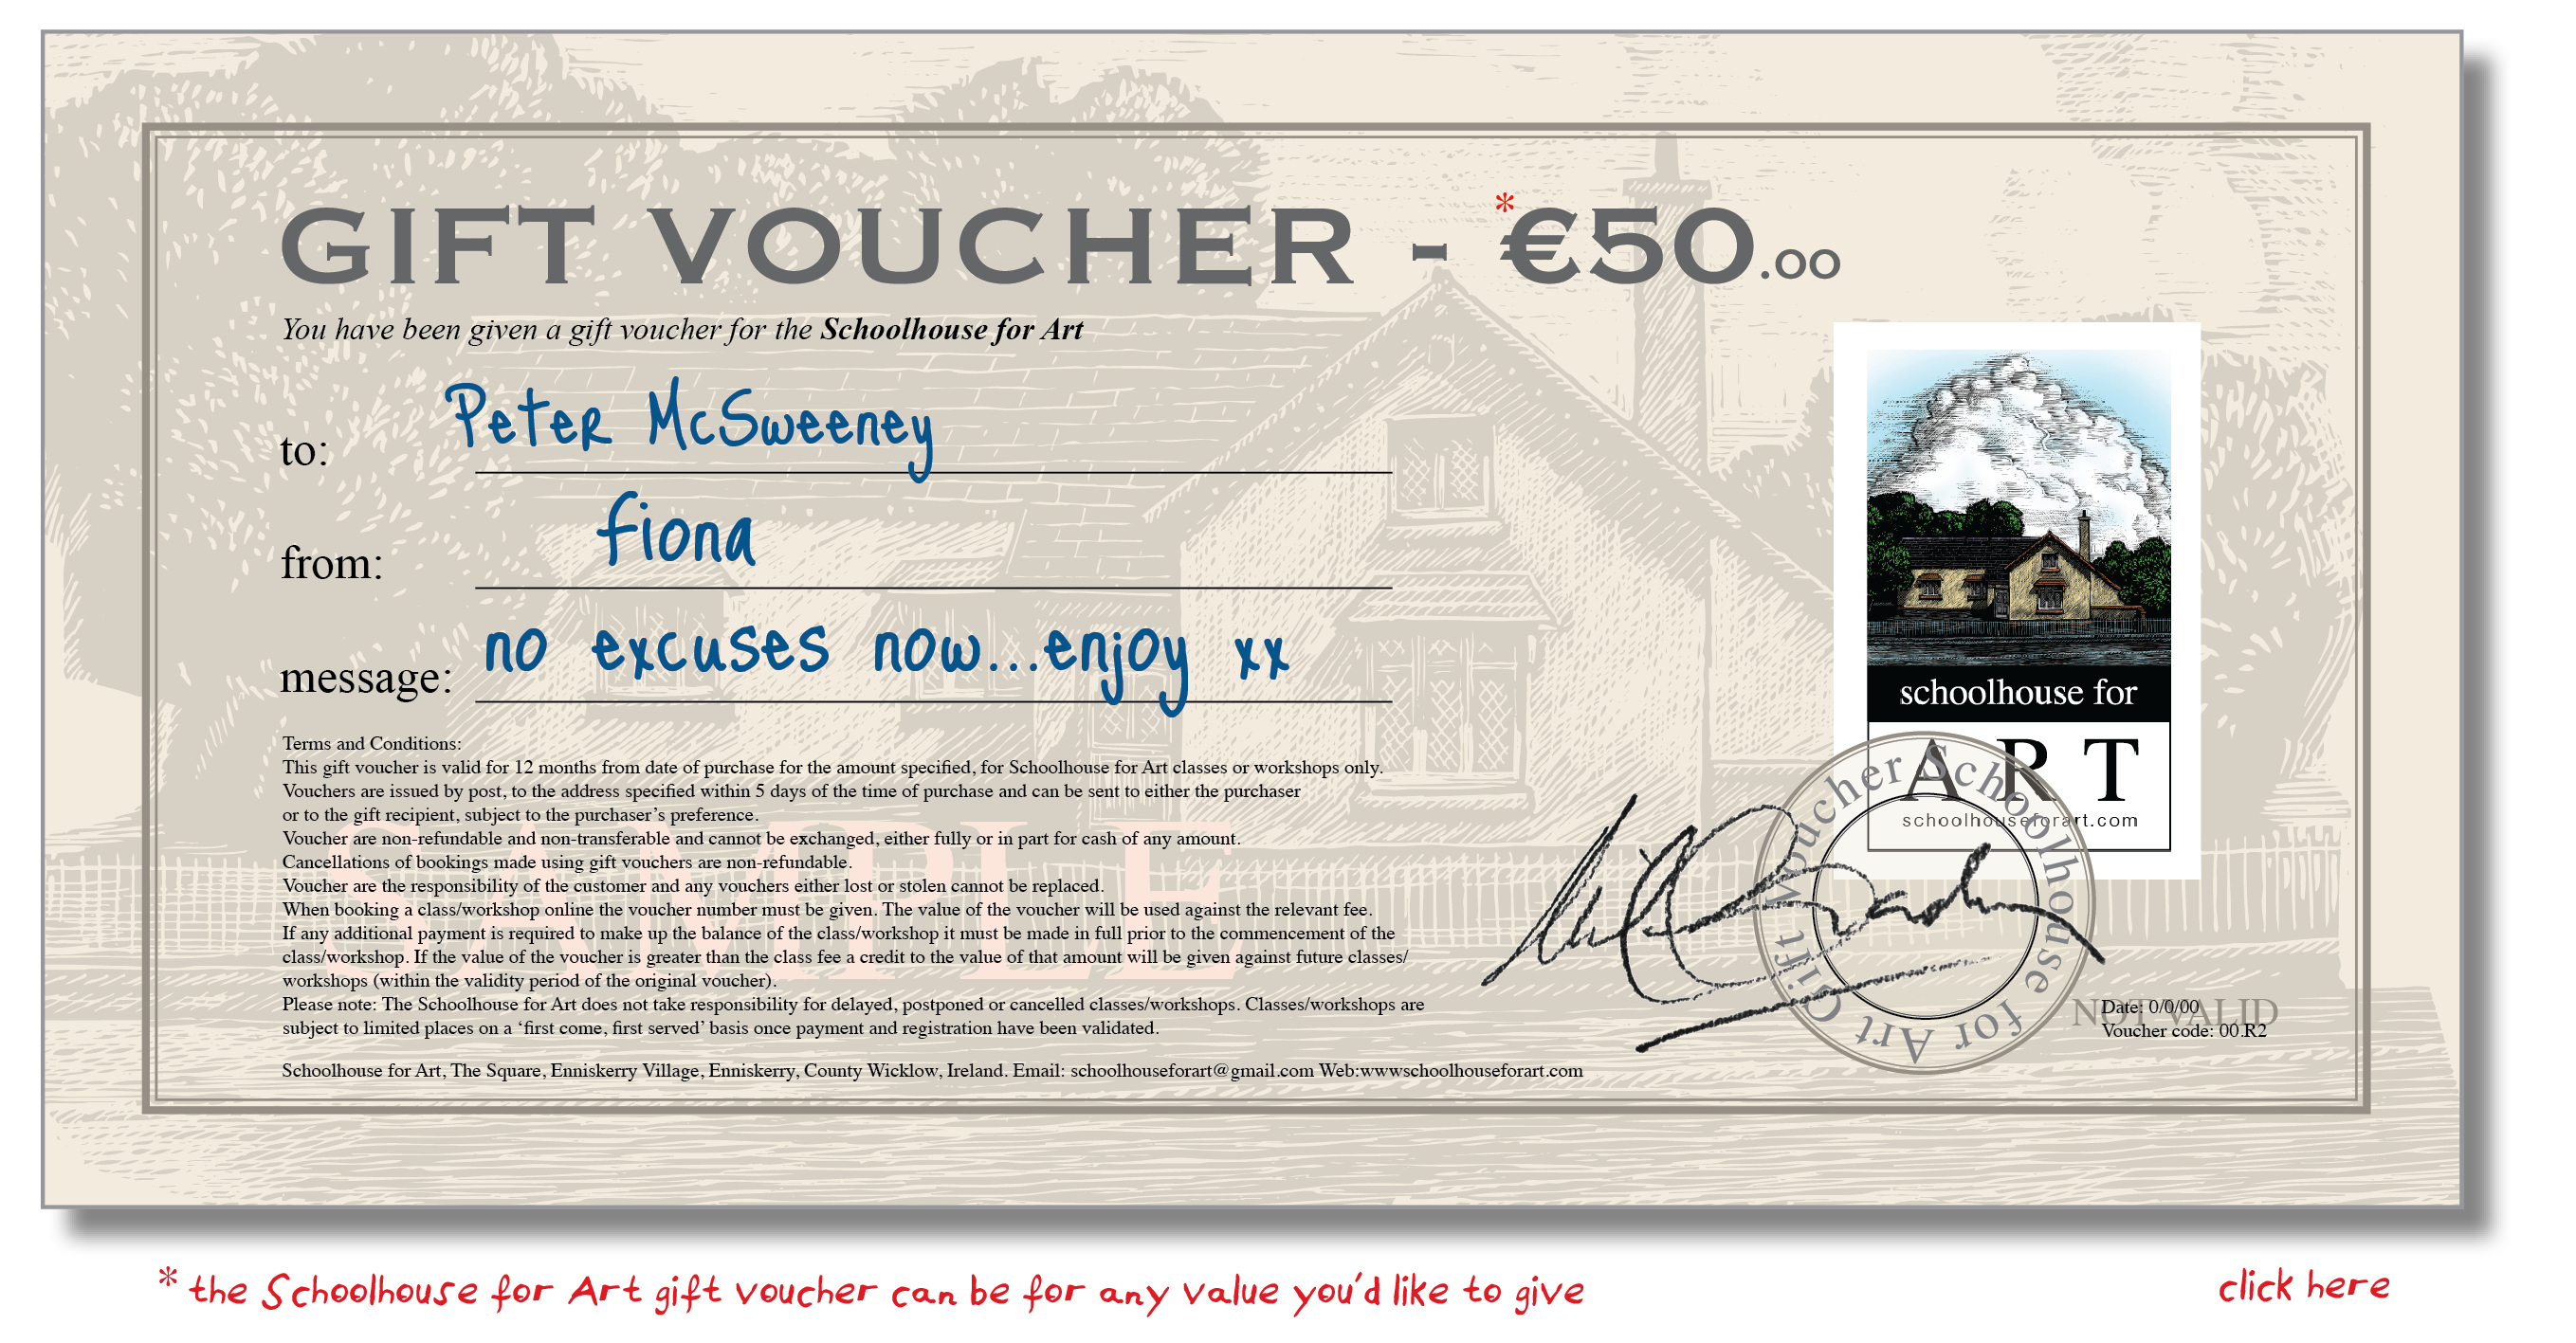 examples of vouchers – Example of a Voucher